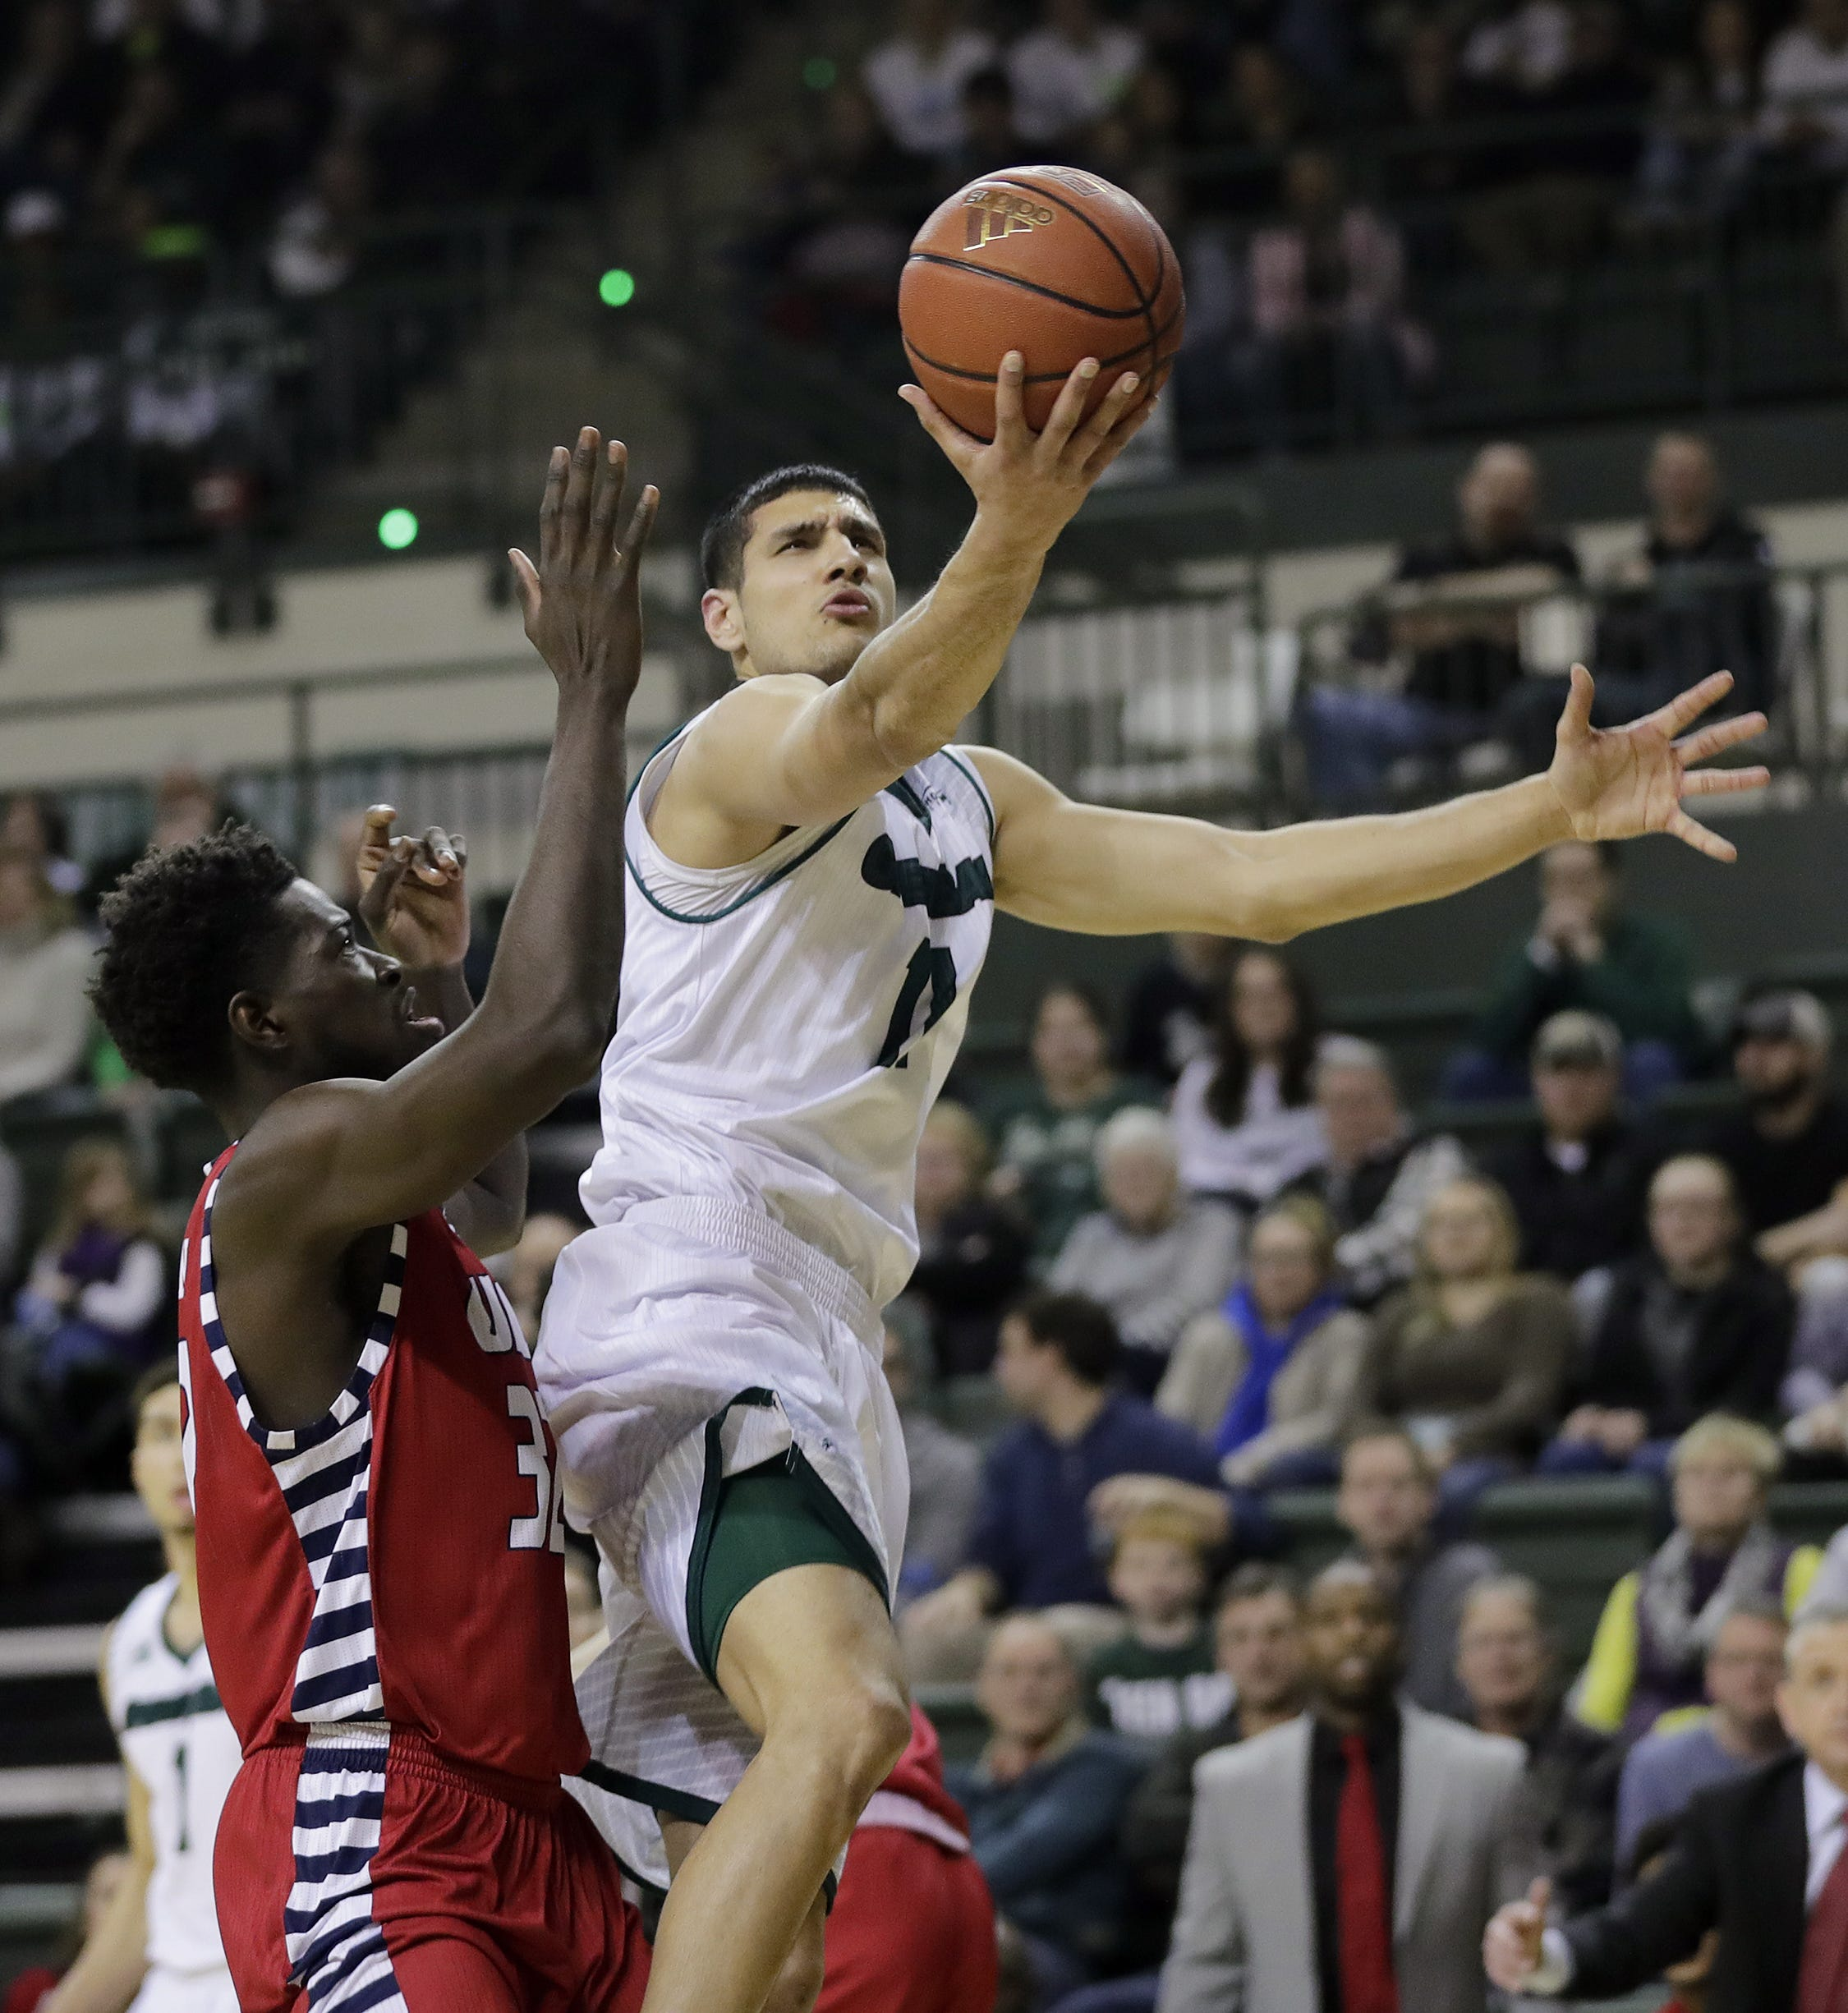 Uwgb Men Shanquan Departure Transfer After Bains' Add Hemphill 7y6Ybfg